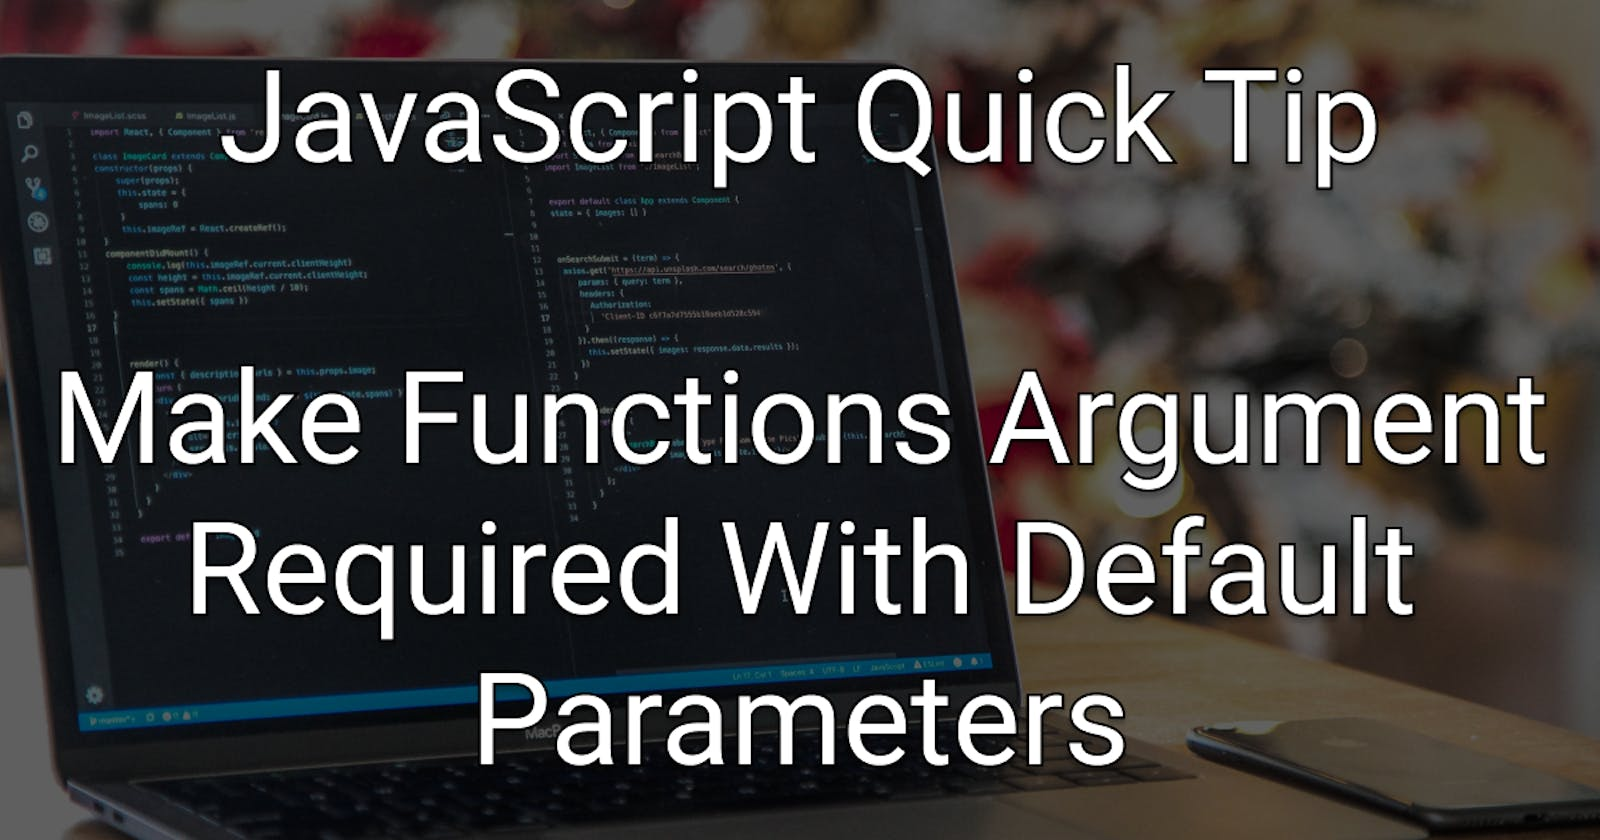 JavaScript Quick Tip: Make Function Arguments Required With Default Parameters